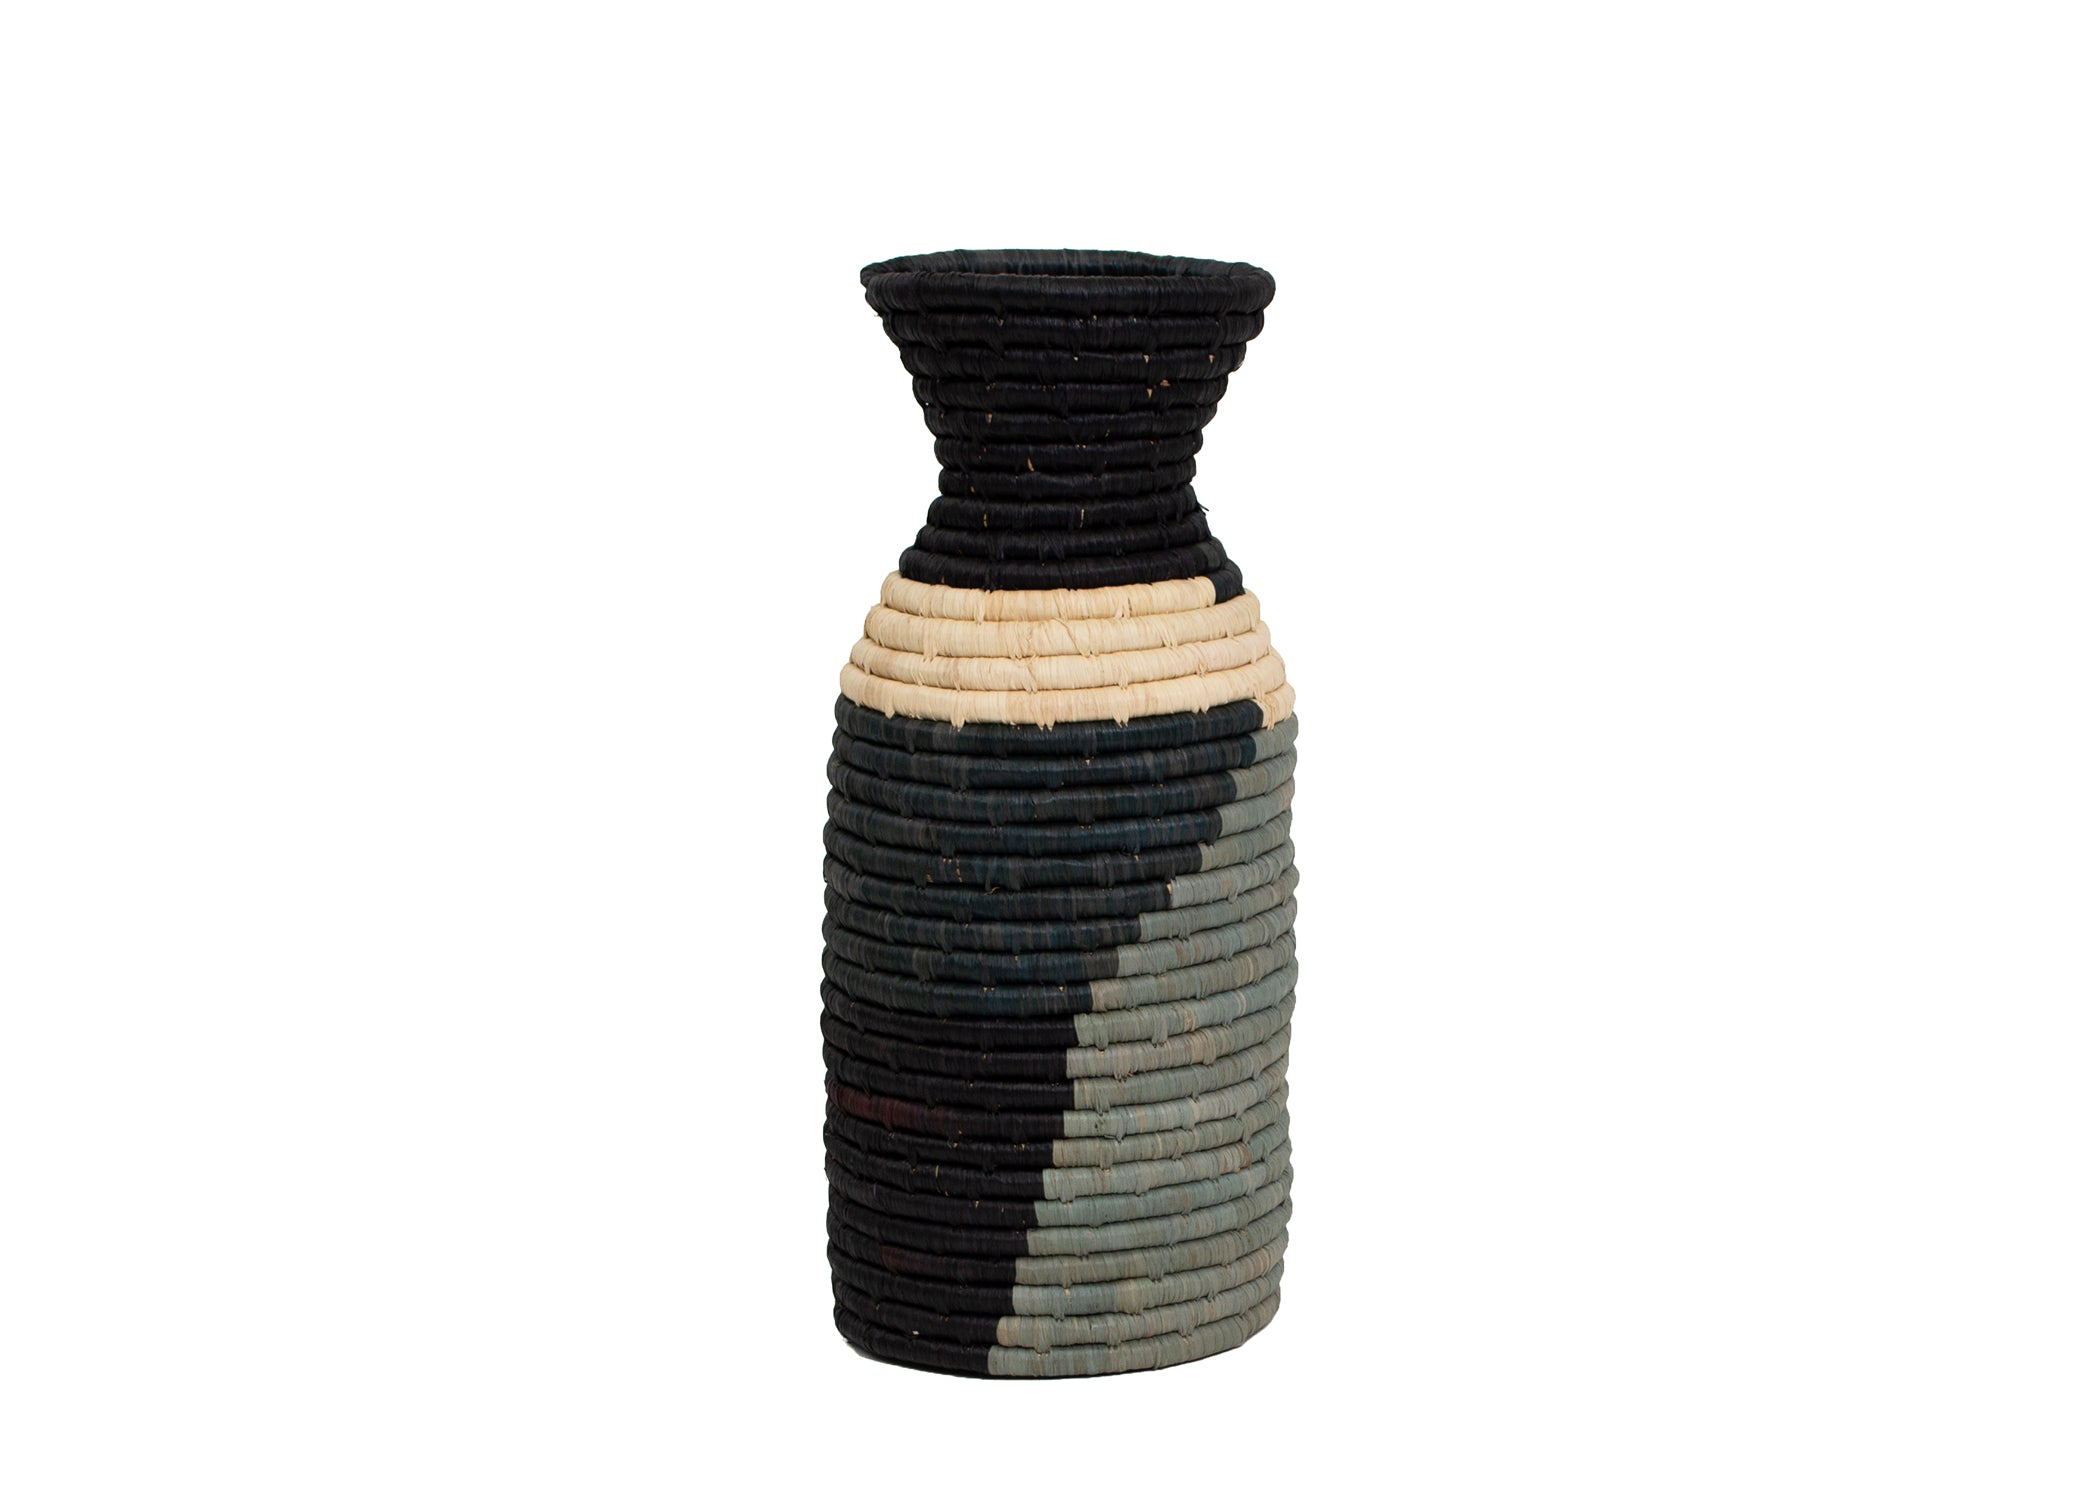 Opal Gray Color Blocked Milk Bottle Vase - KAZI - Artisan made high quality home decor and wall art